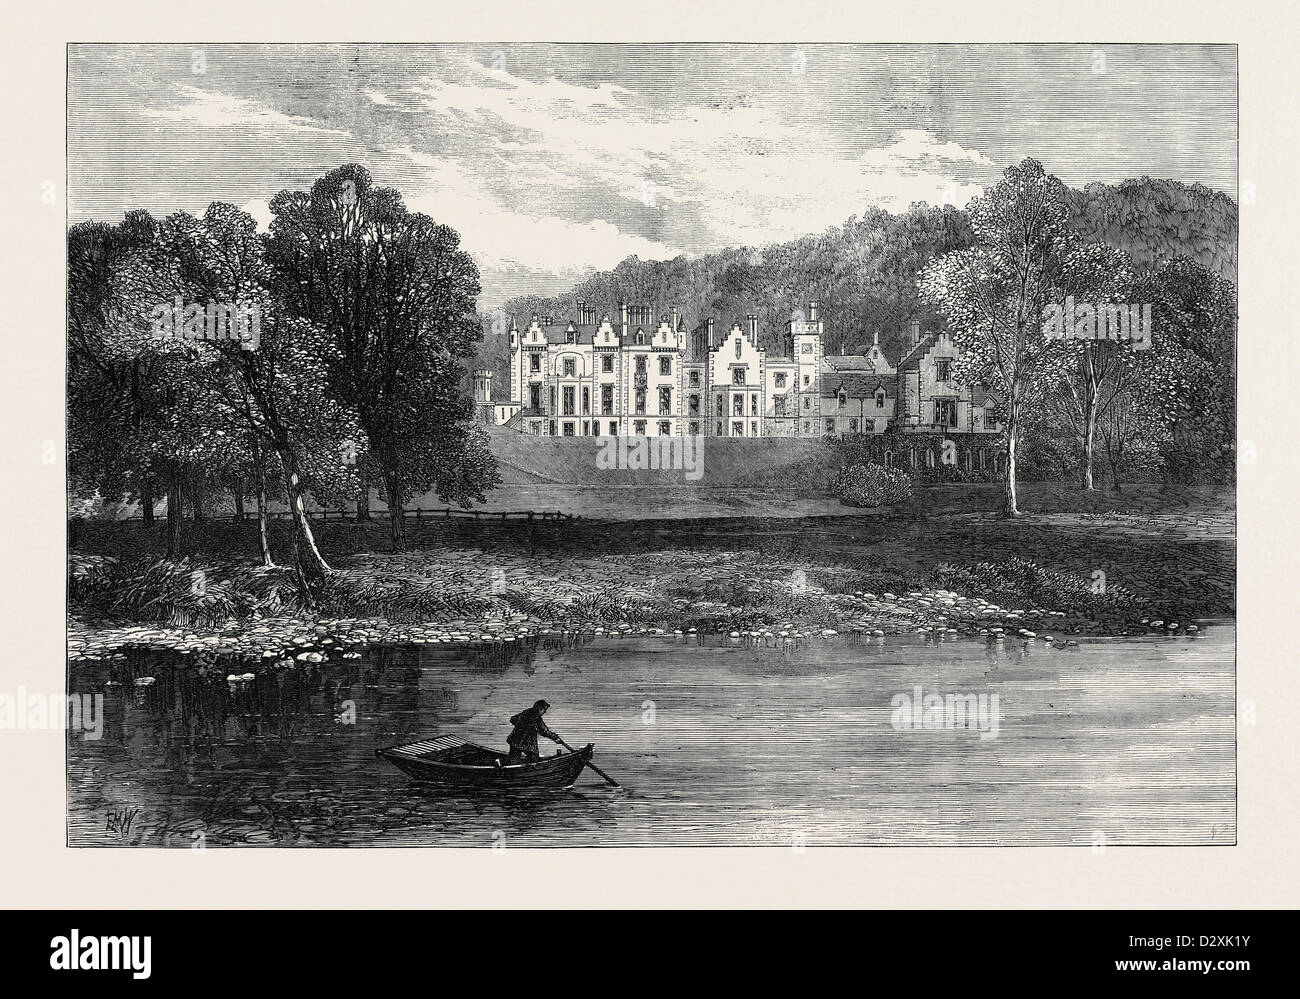 ABBOTSFORD 1871 - Stock Image